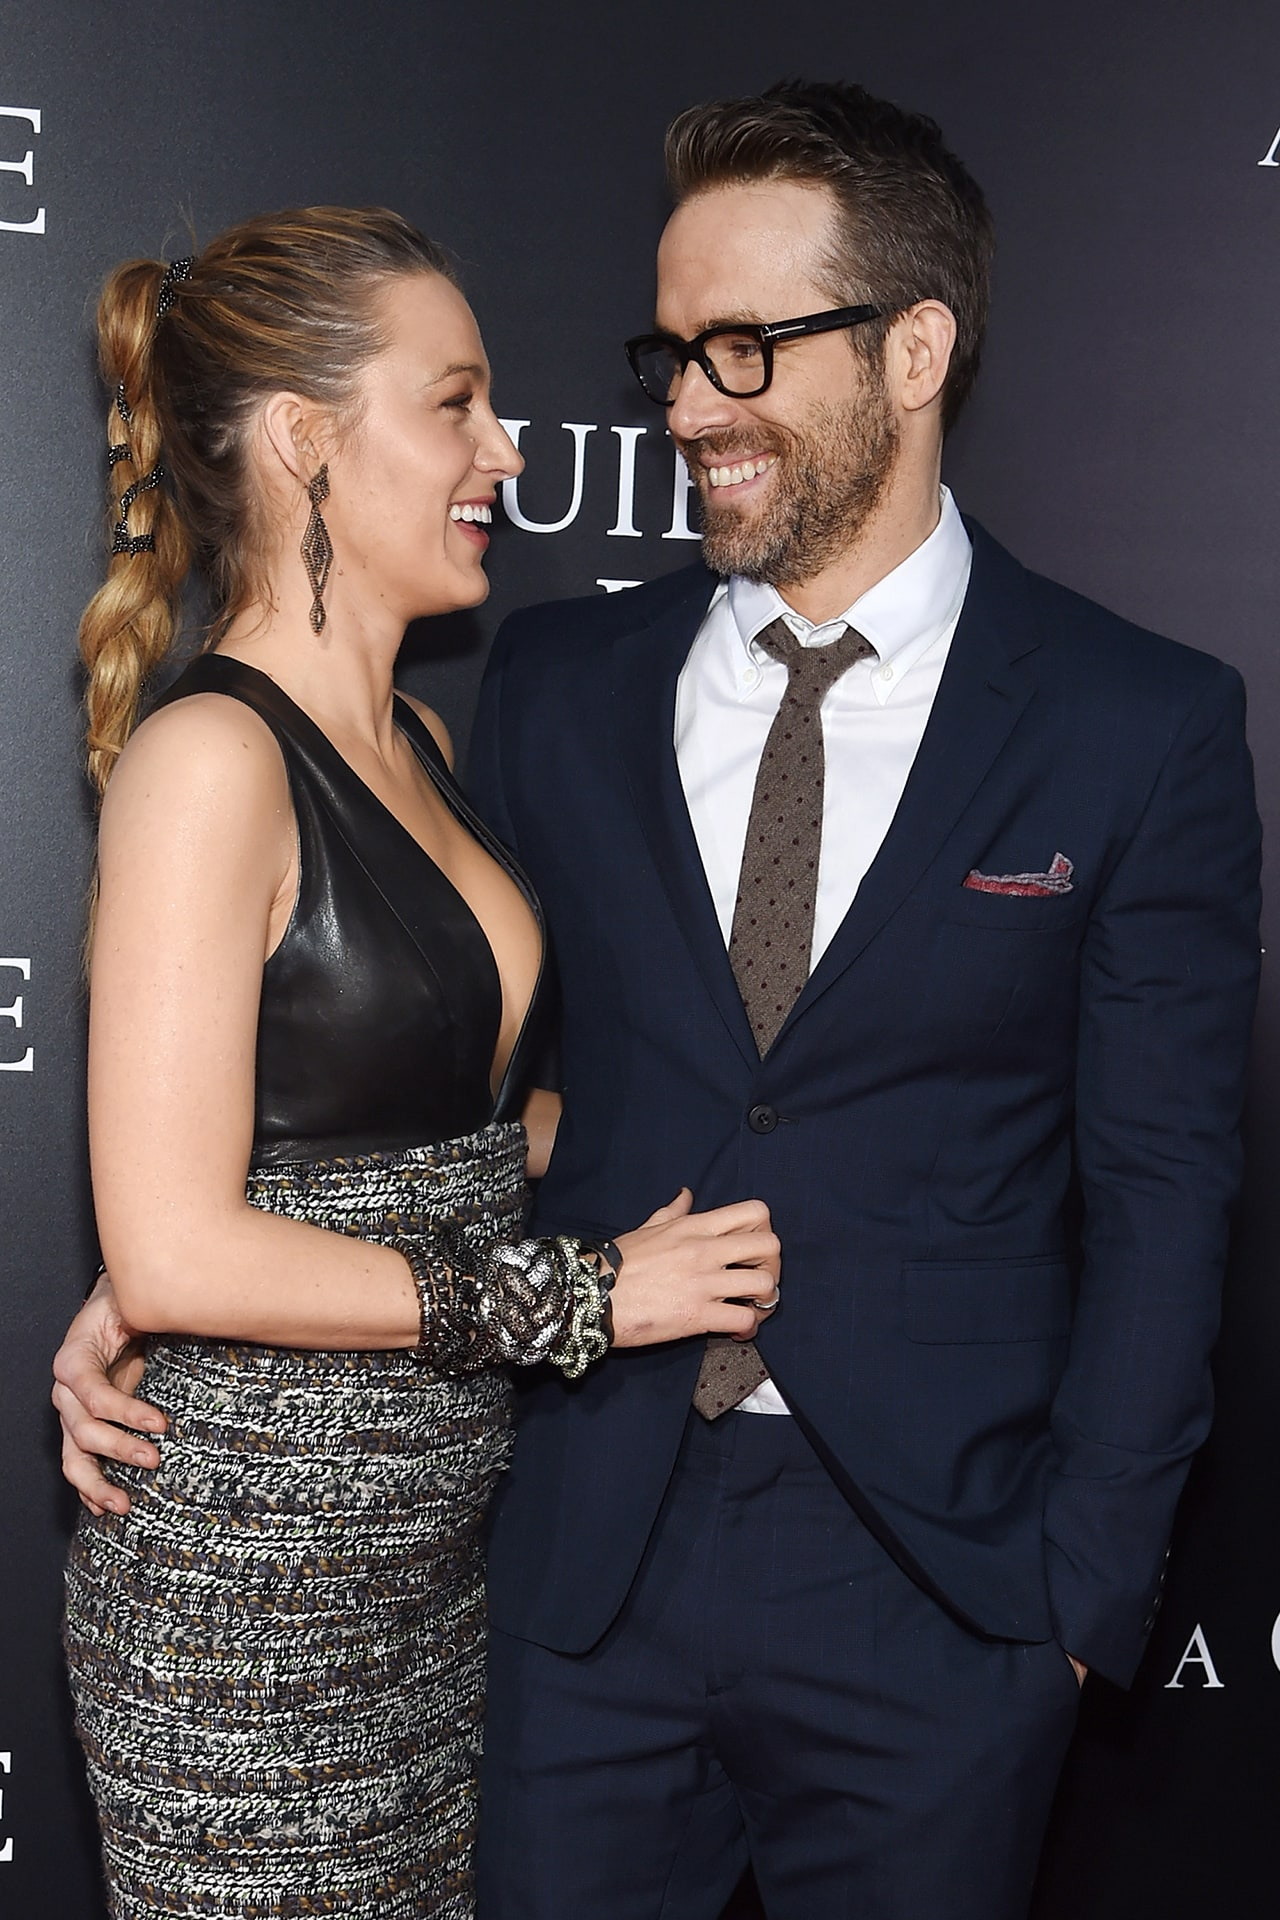 Times Ryan Reynolds And Blake Lively Trolled Each Other On Instagram Vogue Australia